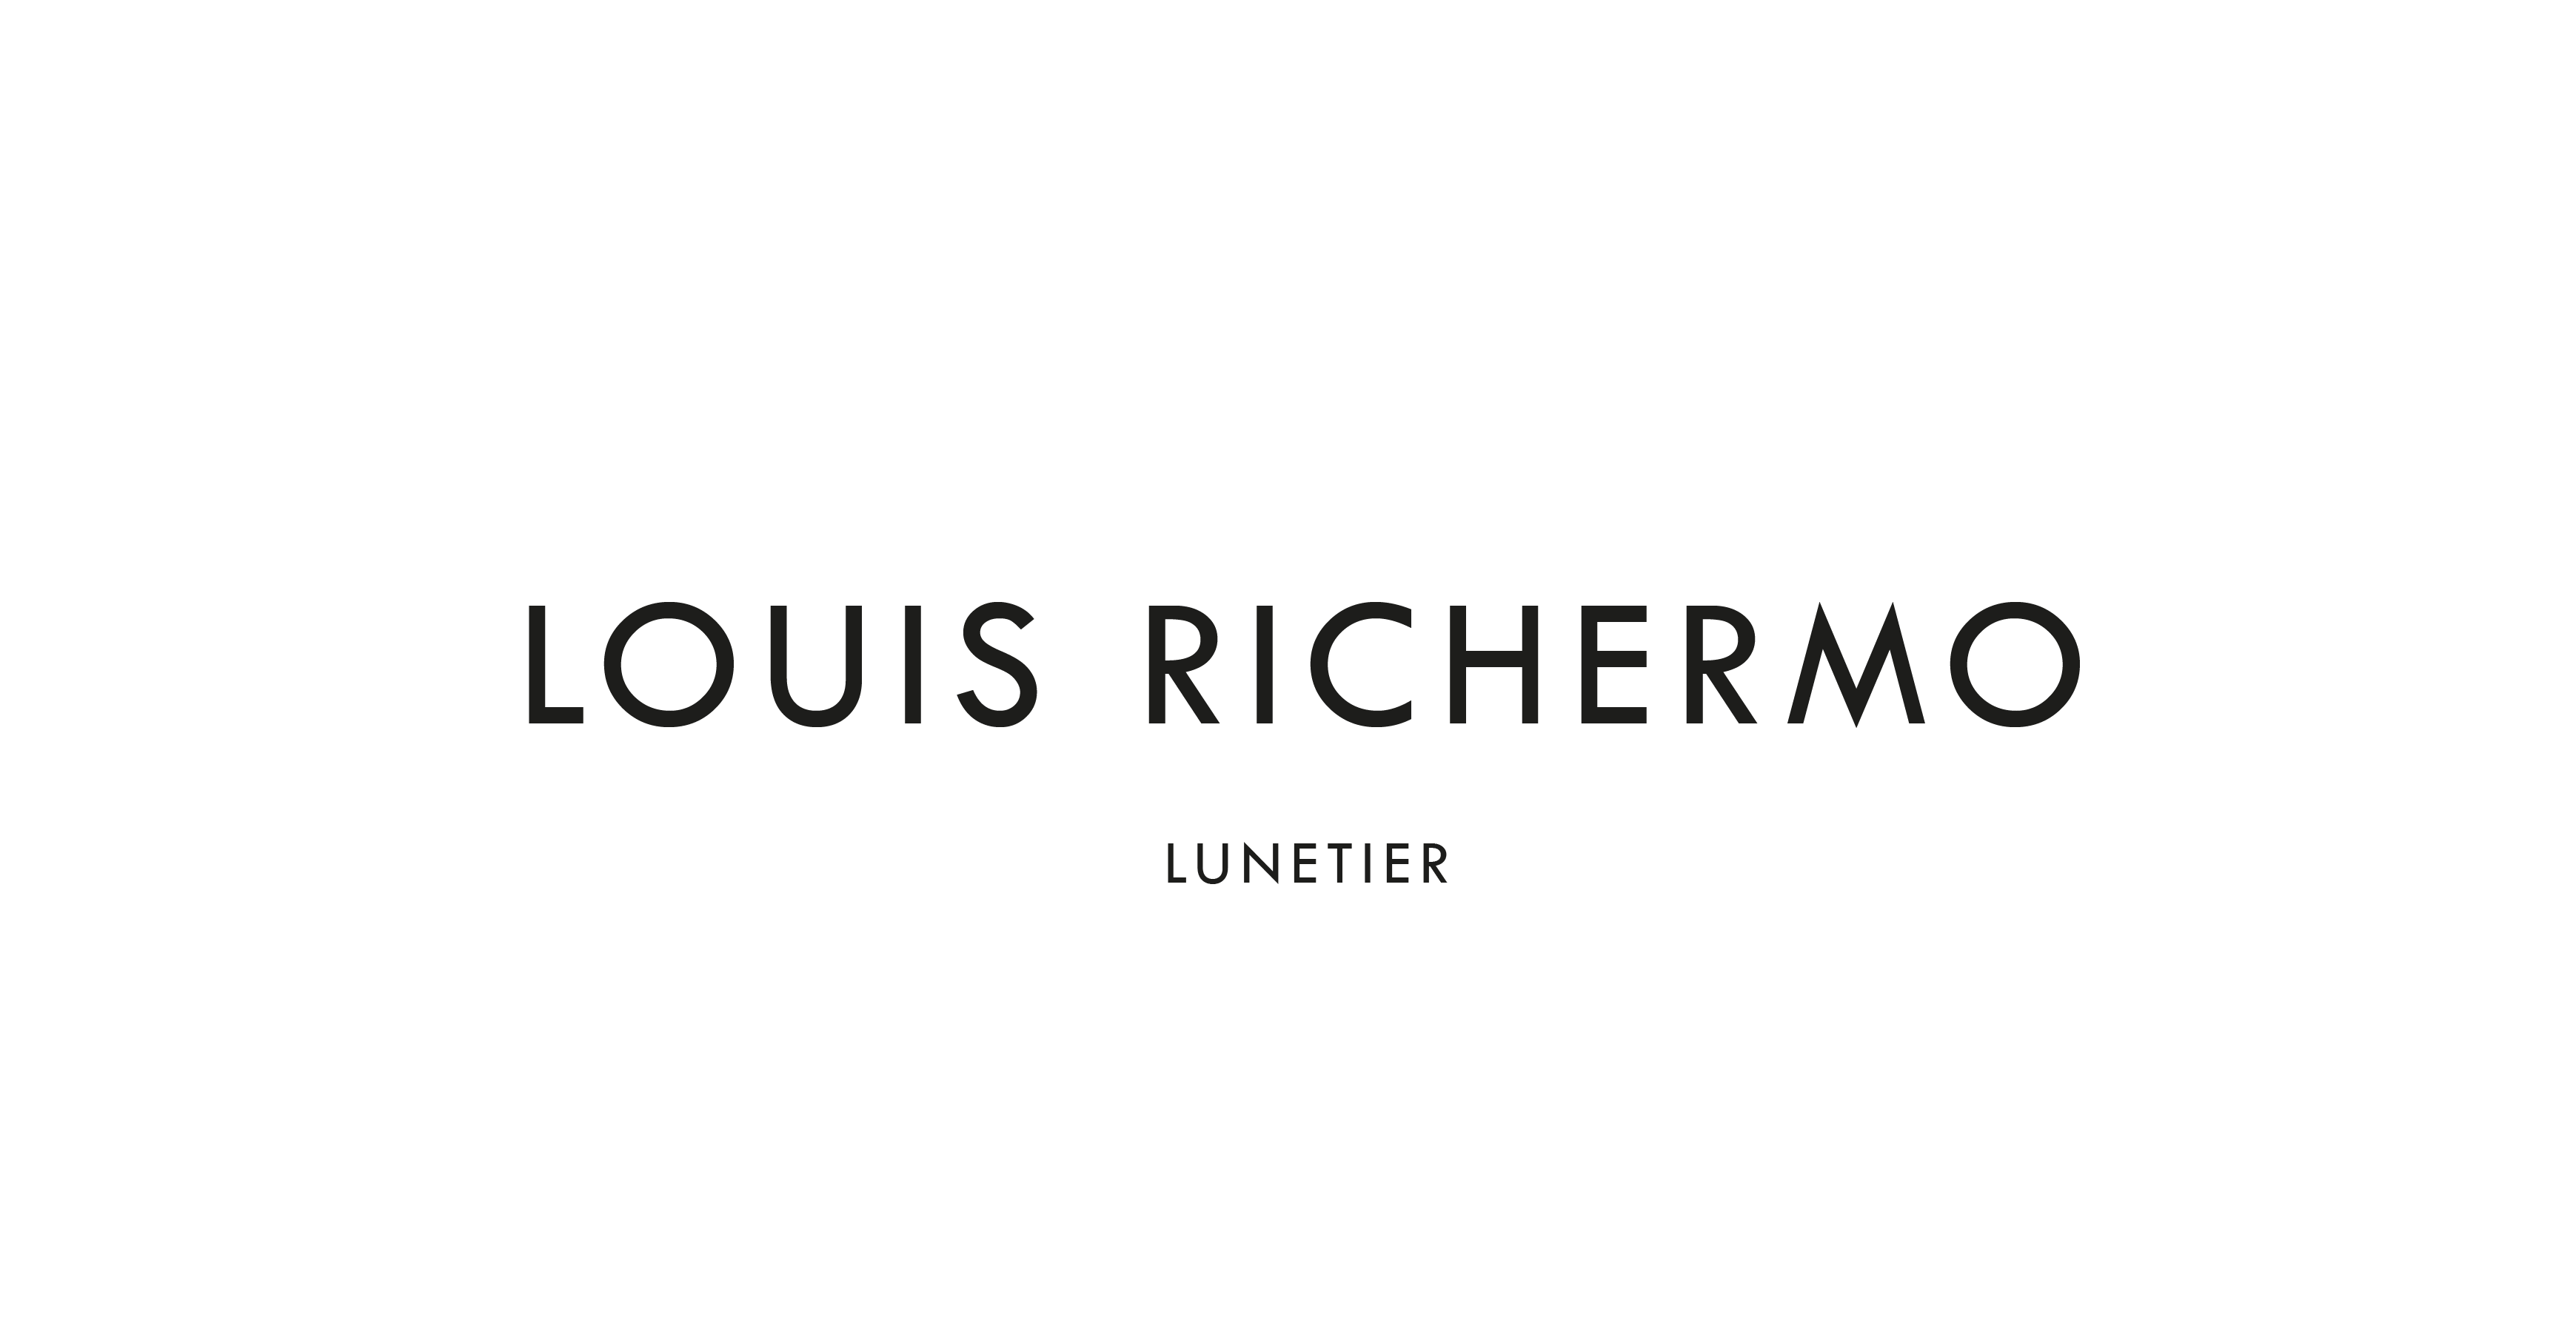 louis richermo